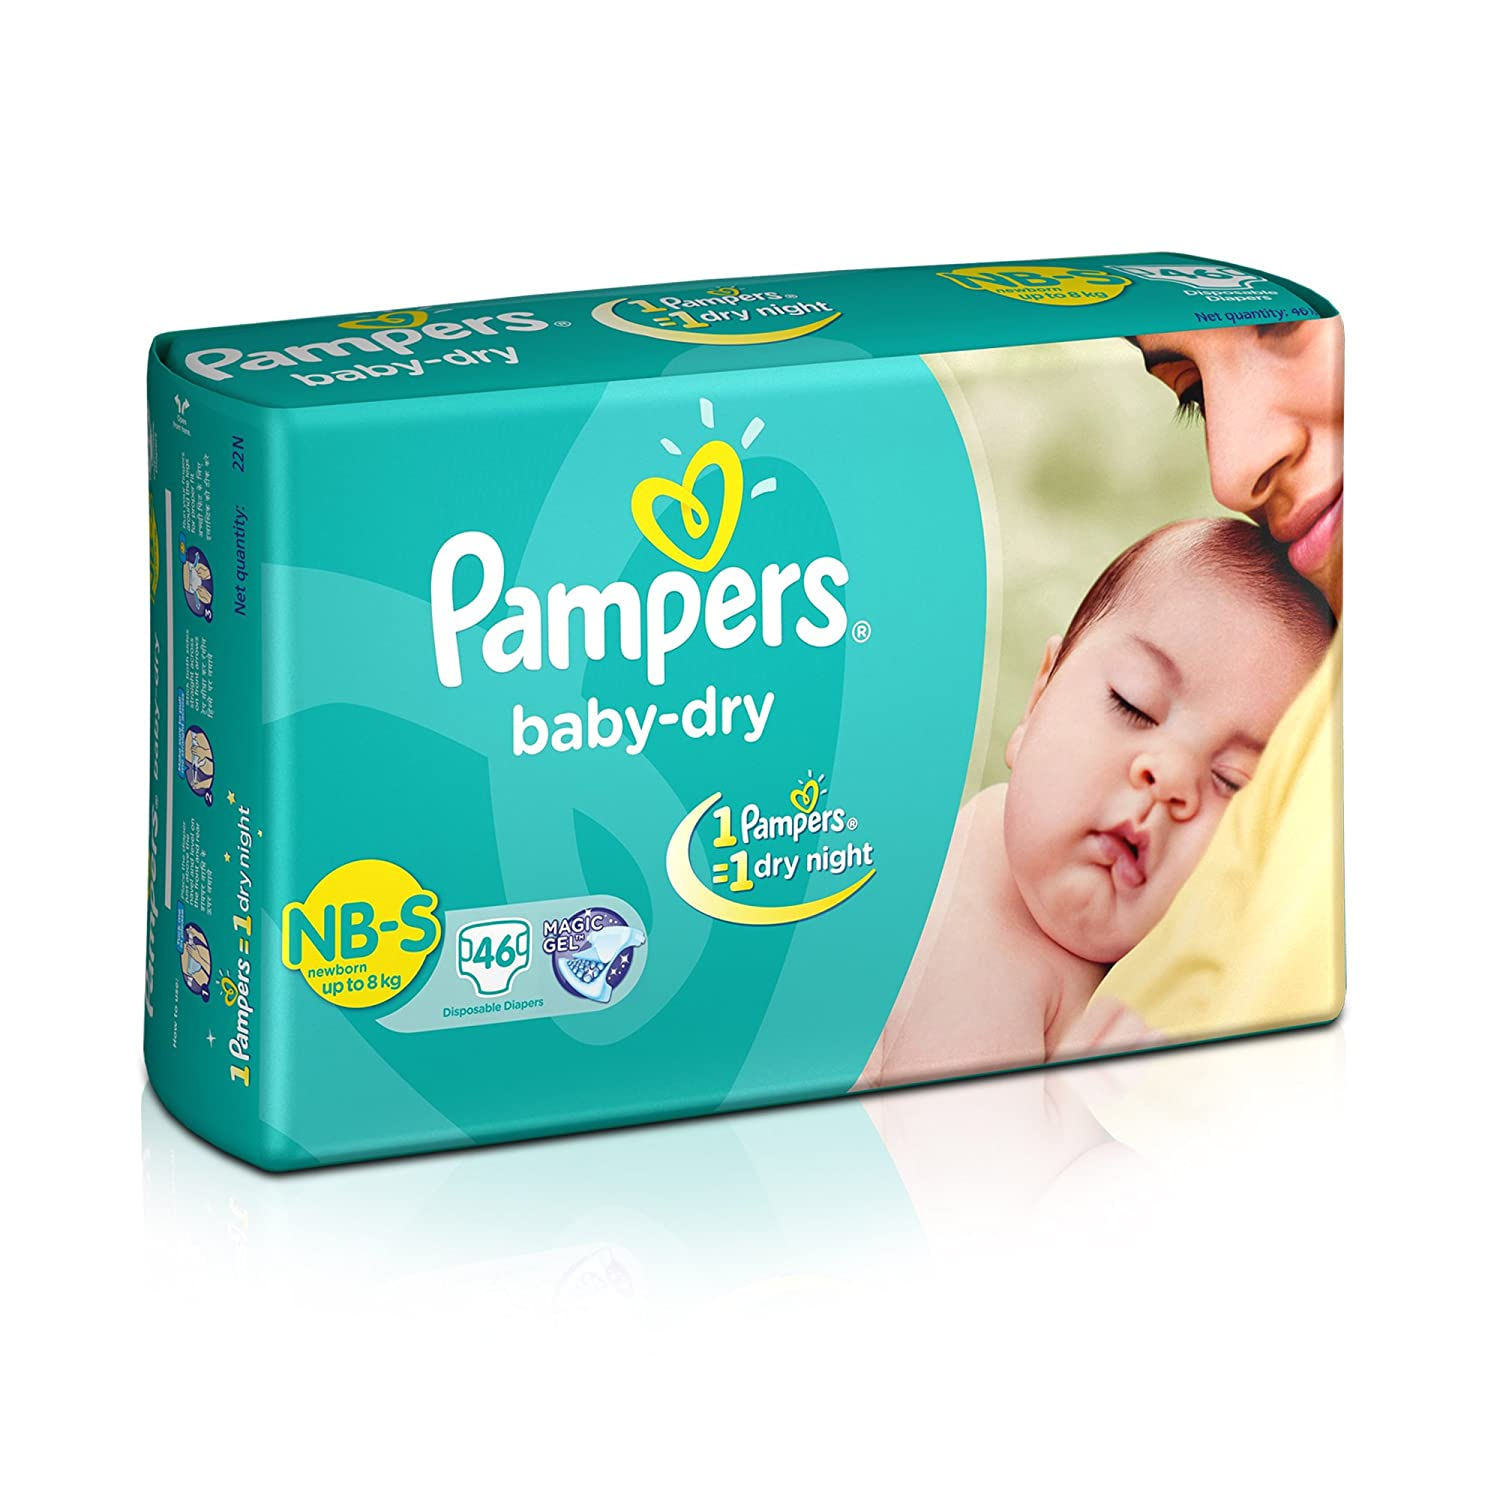 Pampers Baby Dry Diapers NB-Small Size (46 Count)